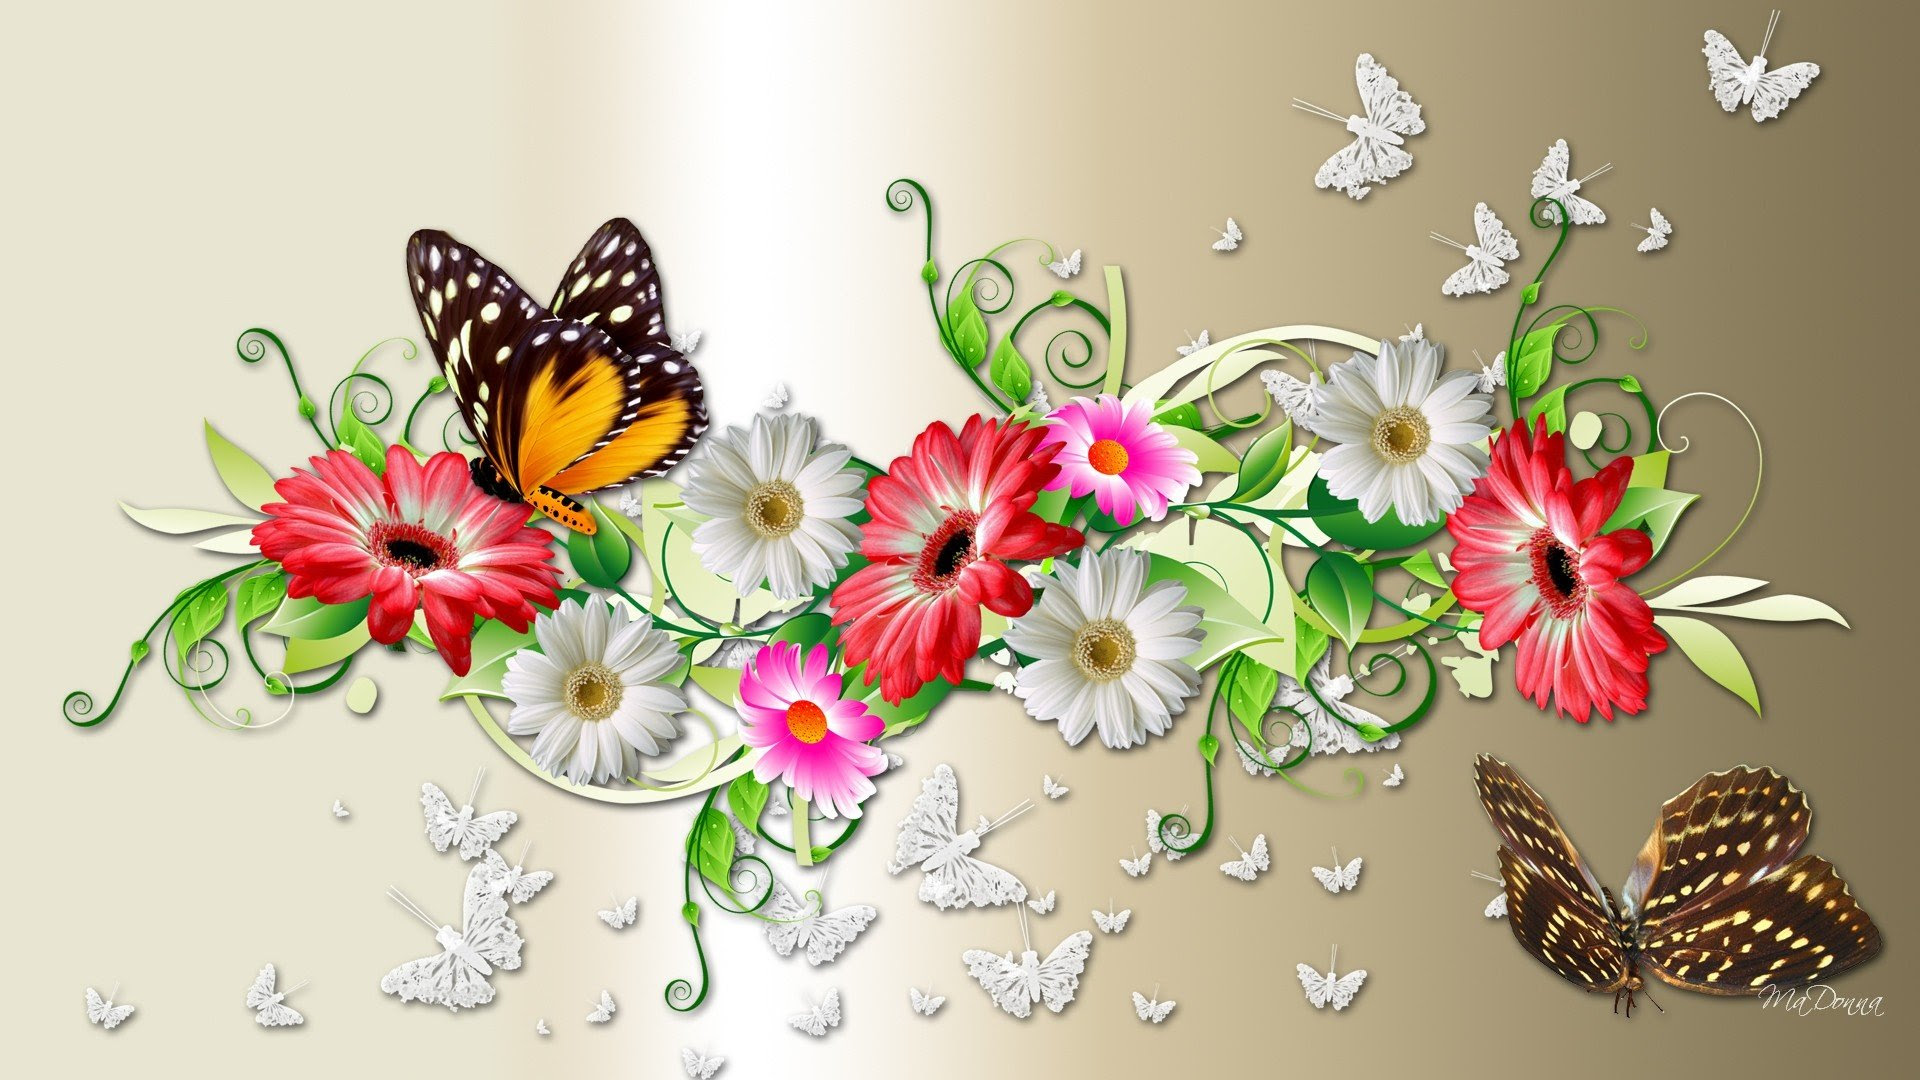 1920x1080 Px Butterflies Colors Decorations Flowers Anime One